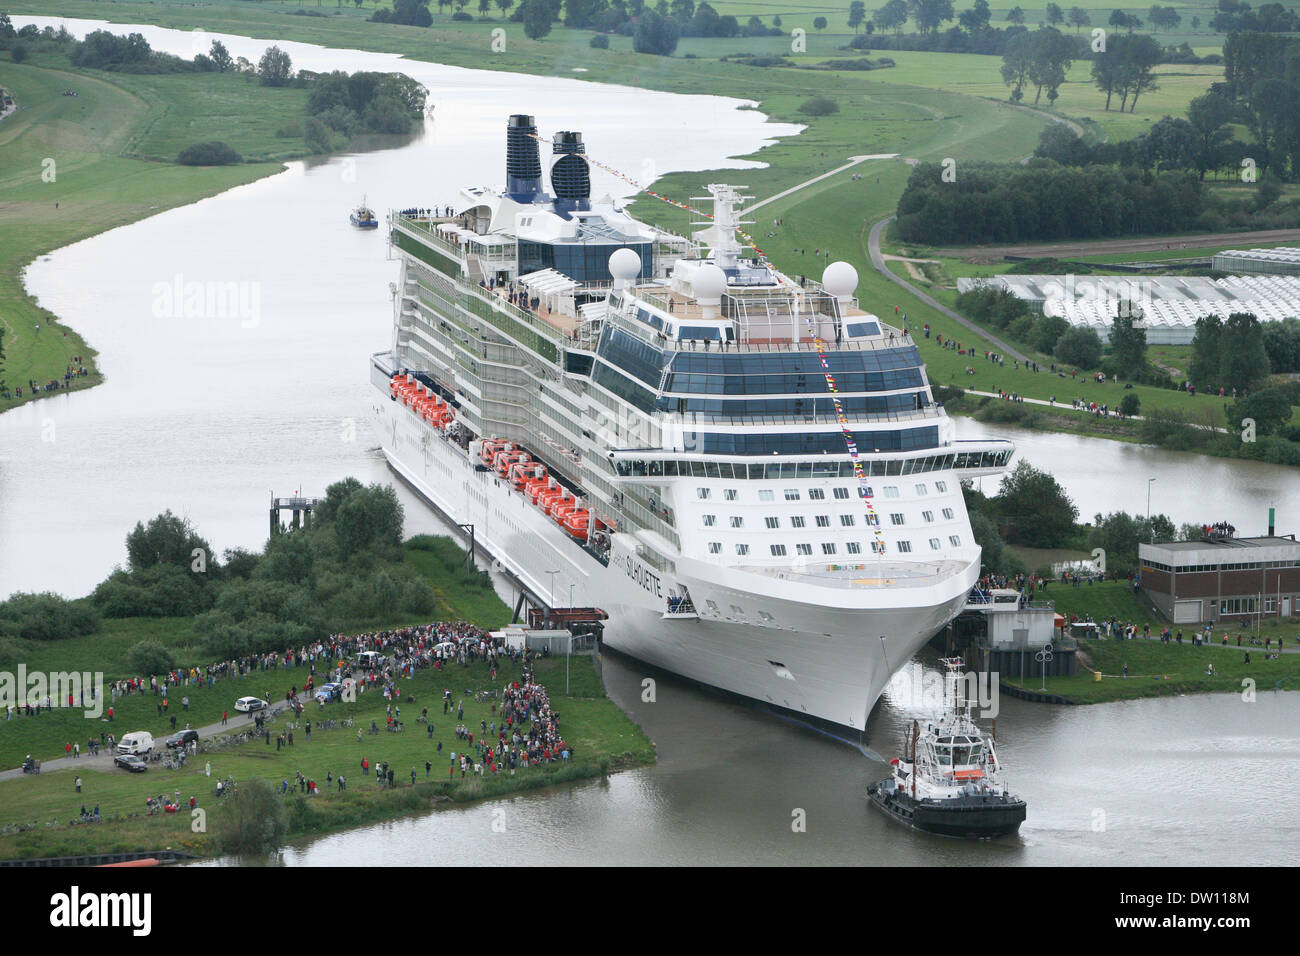 We are so pleased to announce our wins... - Celebrity Cruises